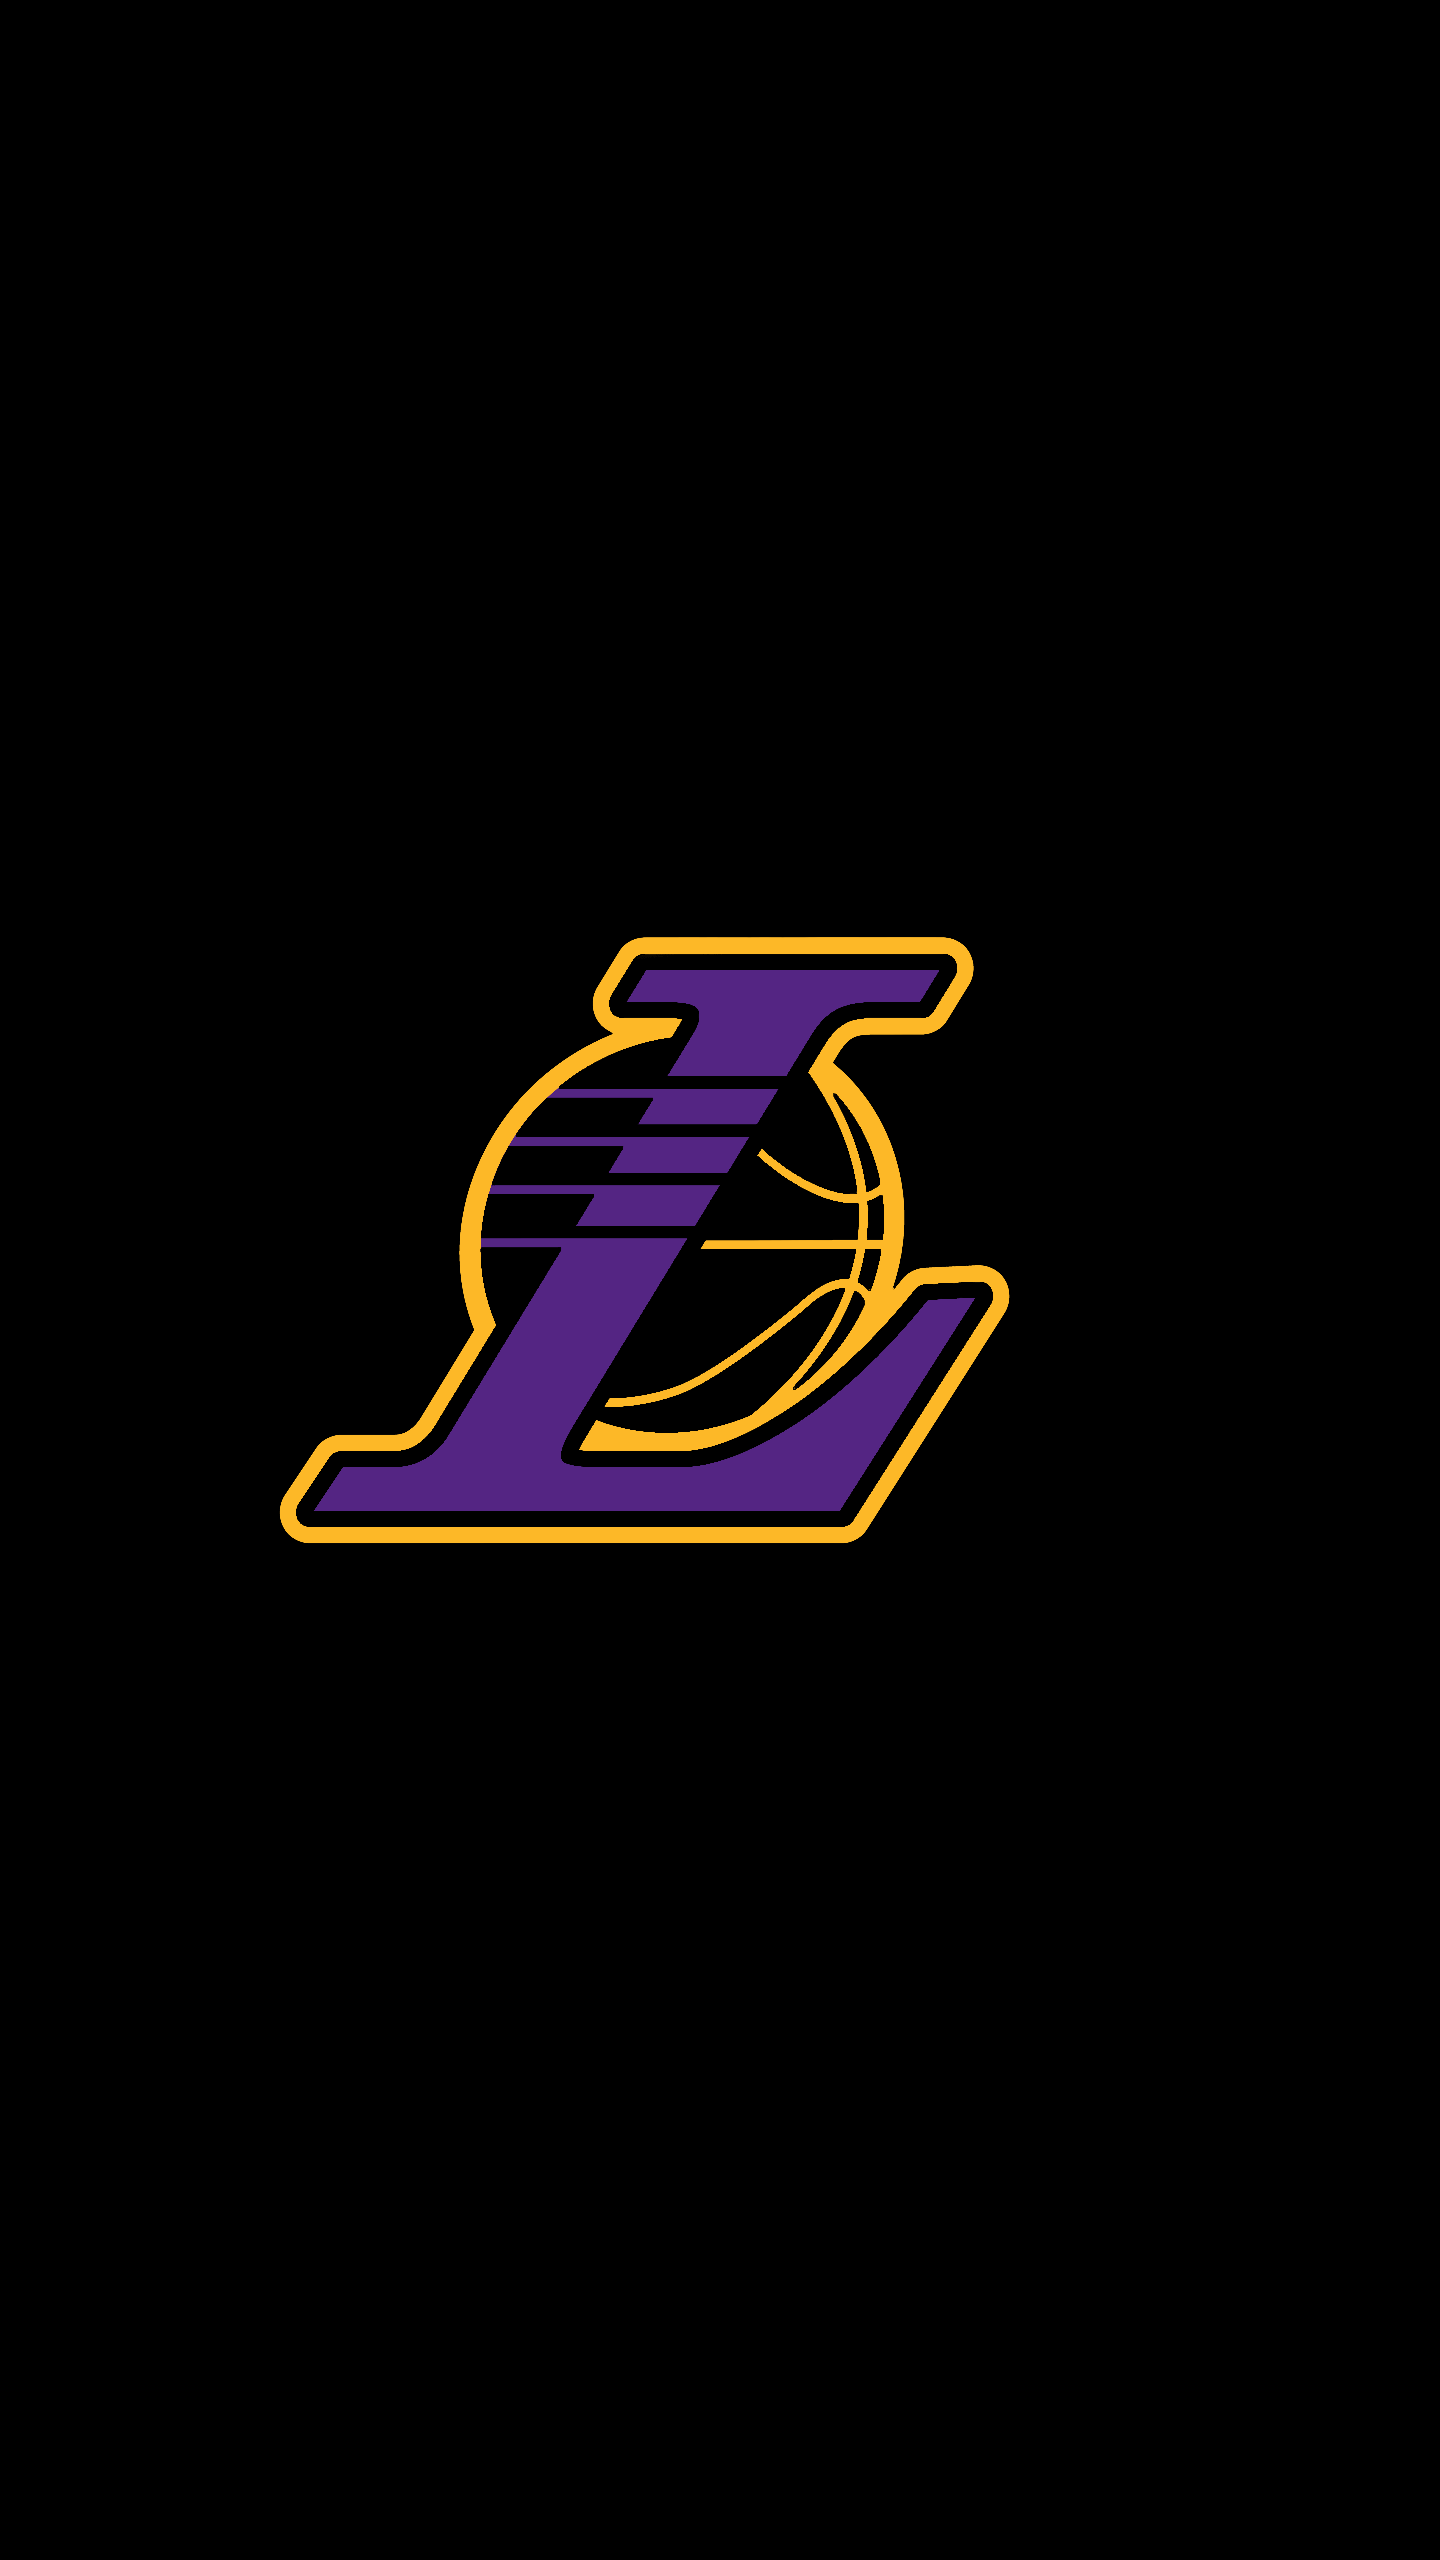 Made my own lakers minimalist logos phone background 1440x2560 made my own lakers minimalist logos phone background 1440x2560 lakers voltagebd Choice Image